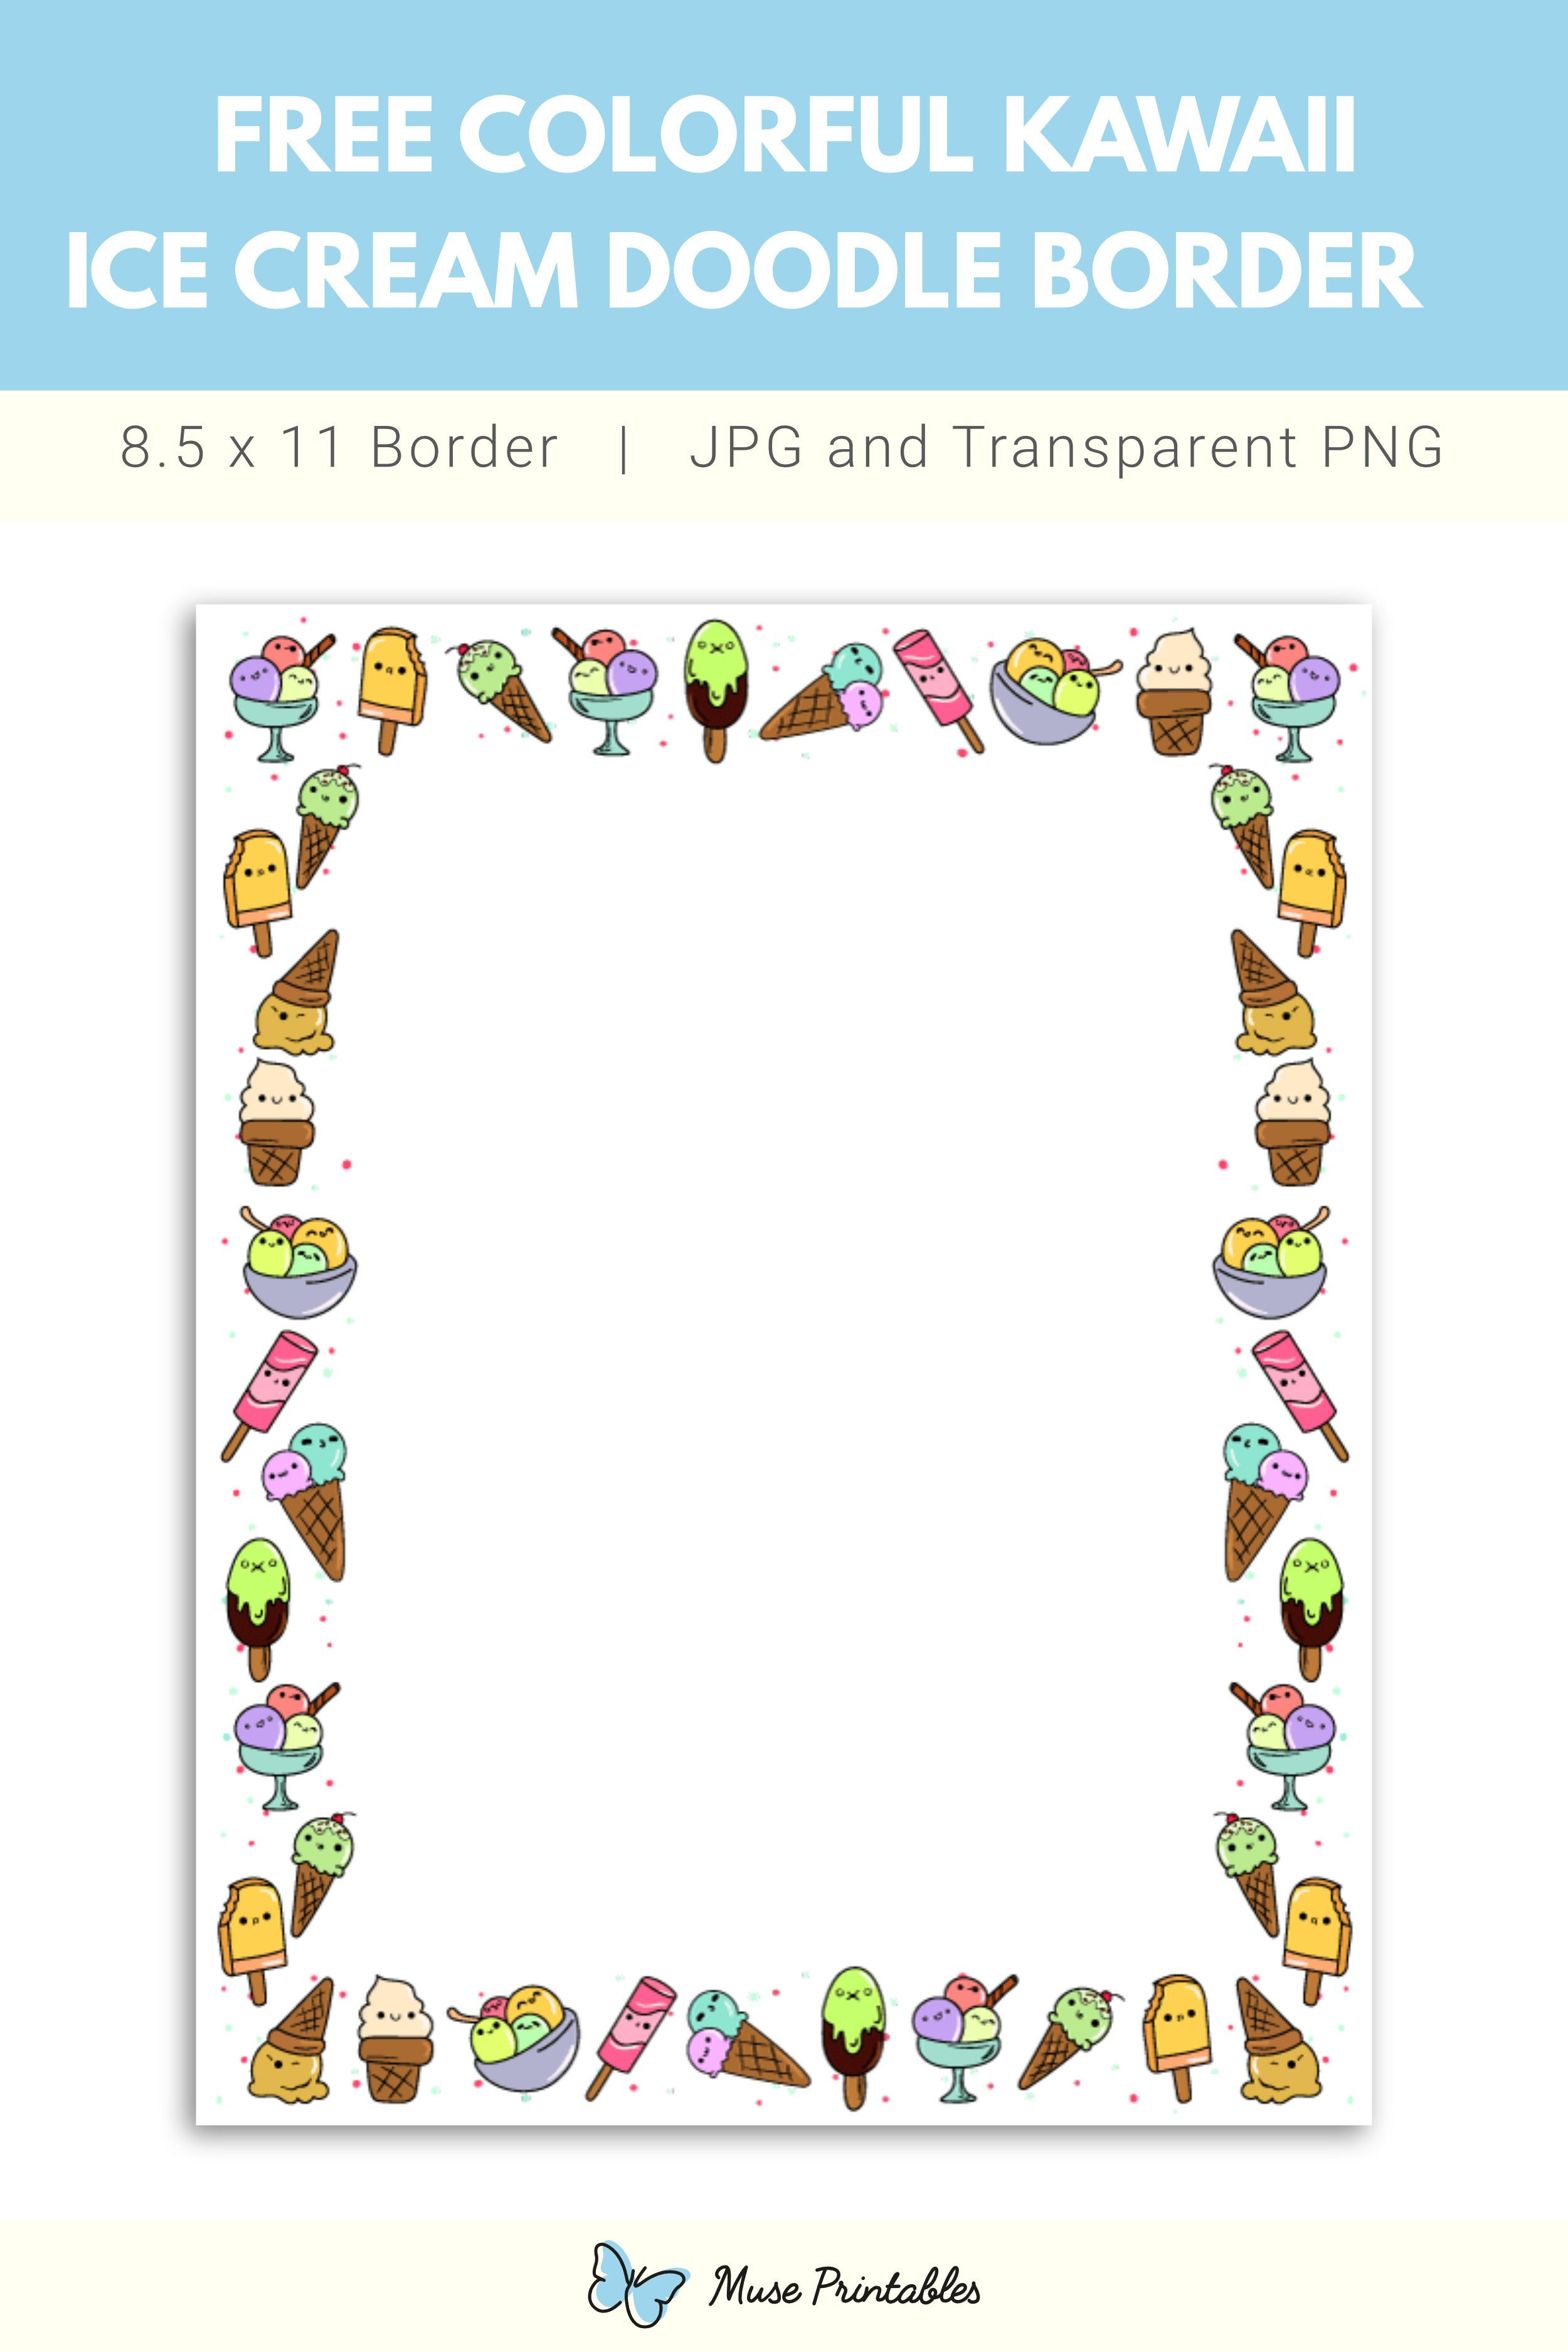 Free Printable Colorful Kawaii Ice Cream Doodle Border Doodle Borders Doodle Pages Sharpie Doodles